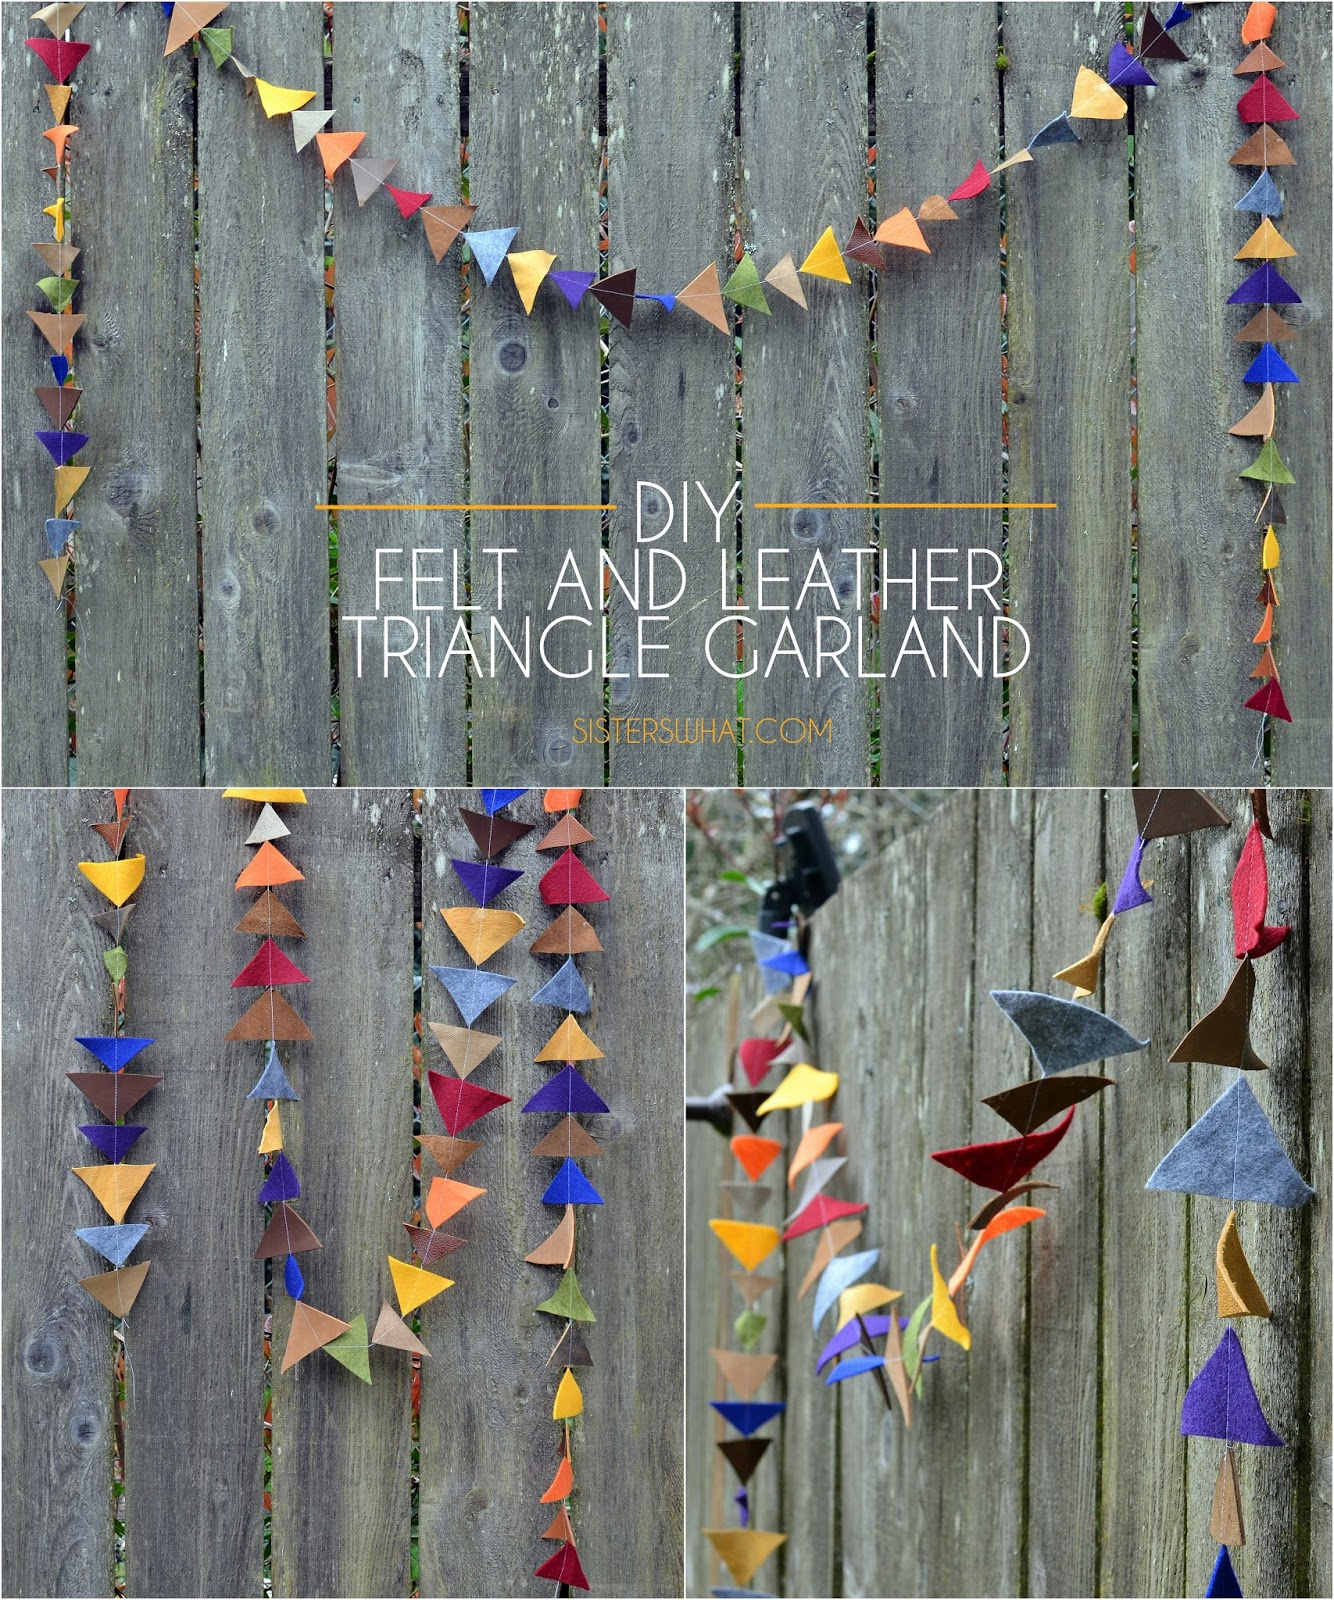 DIY felt and leather Triangle #Garland